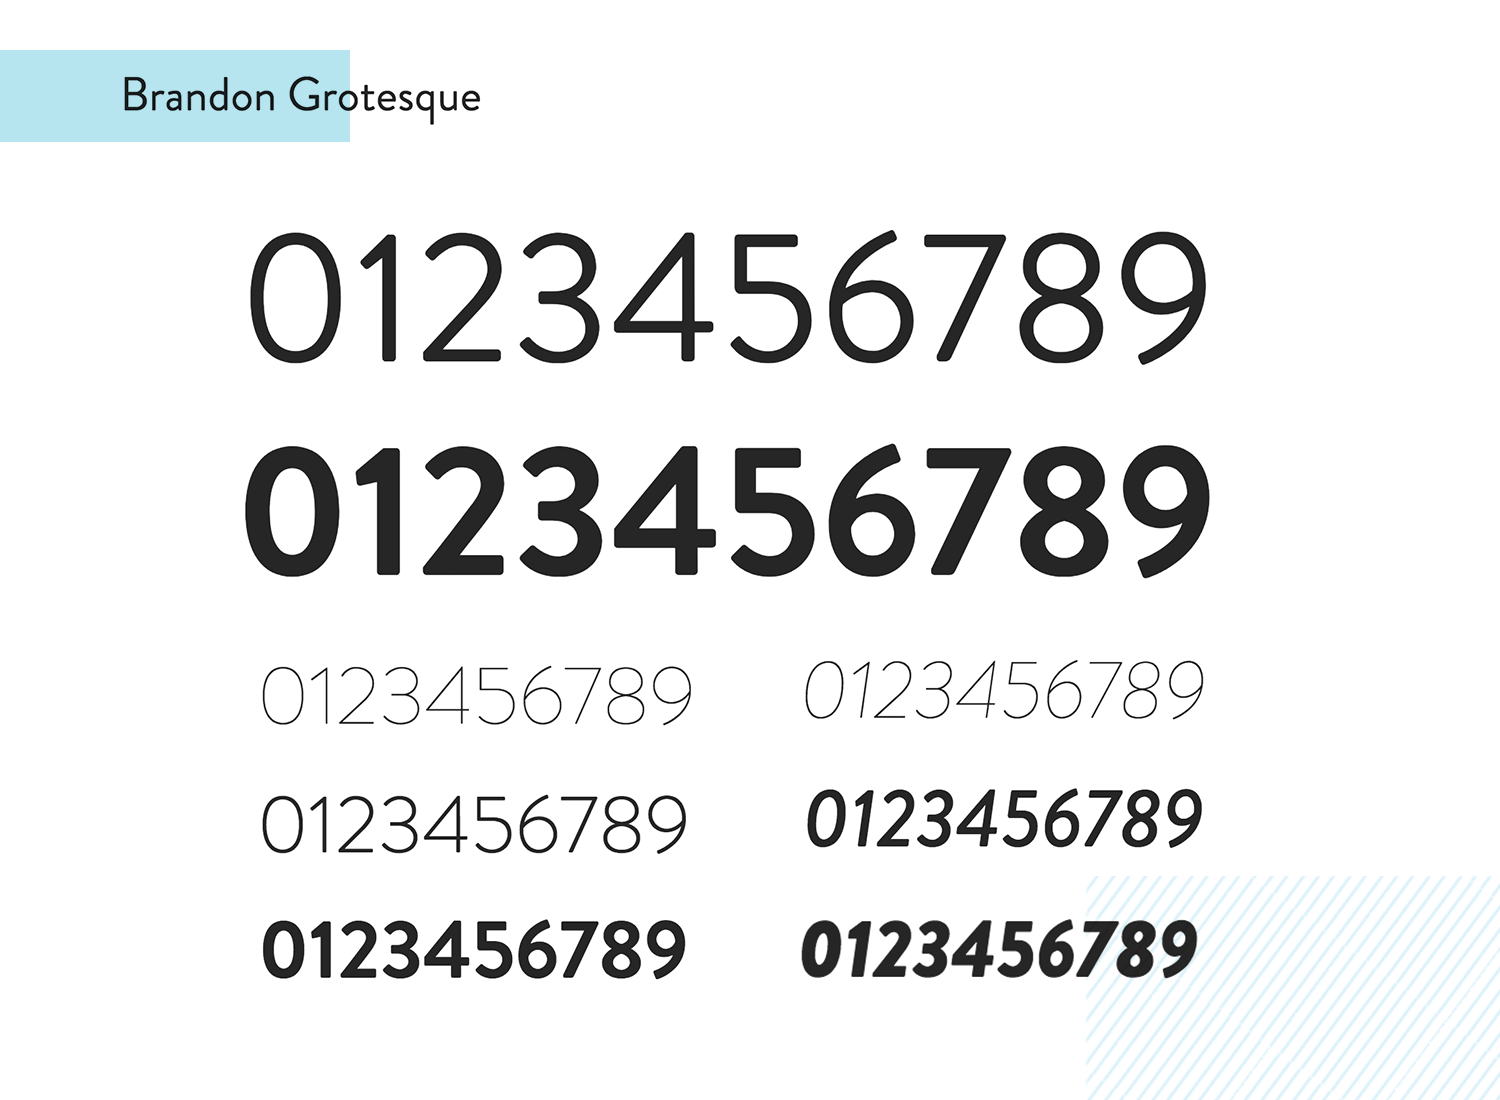 brandon grotesque as paid number font